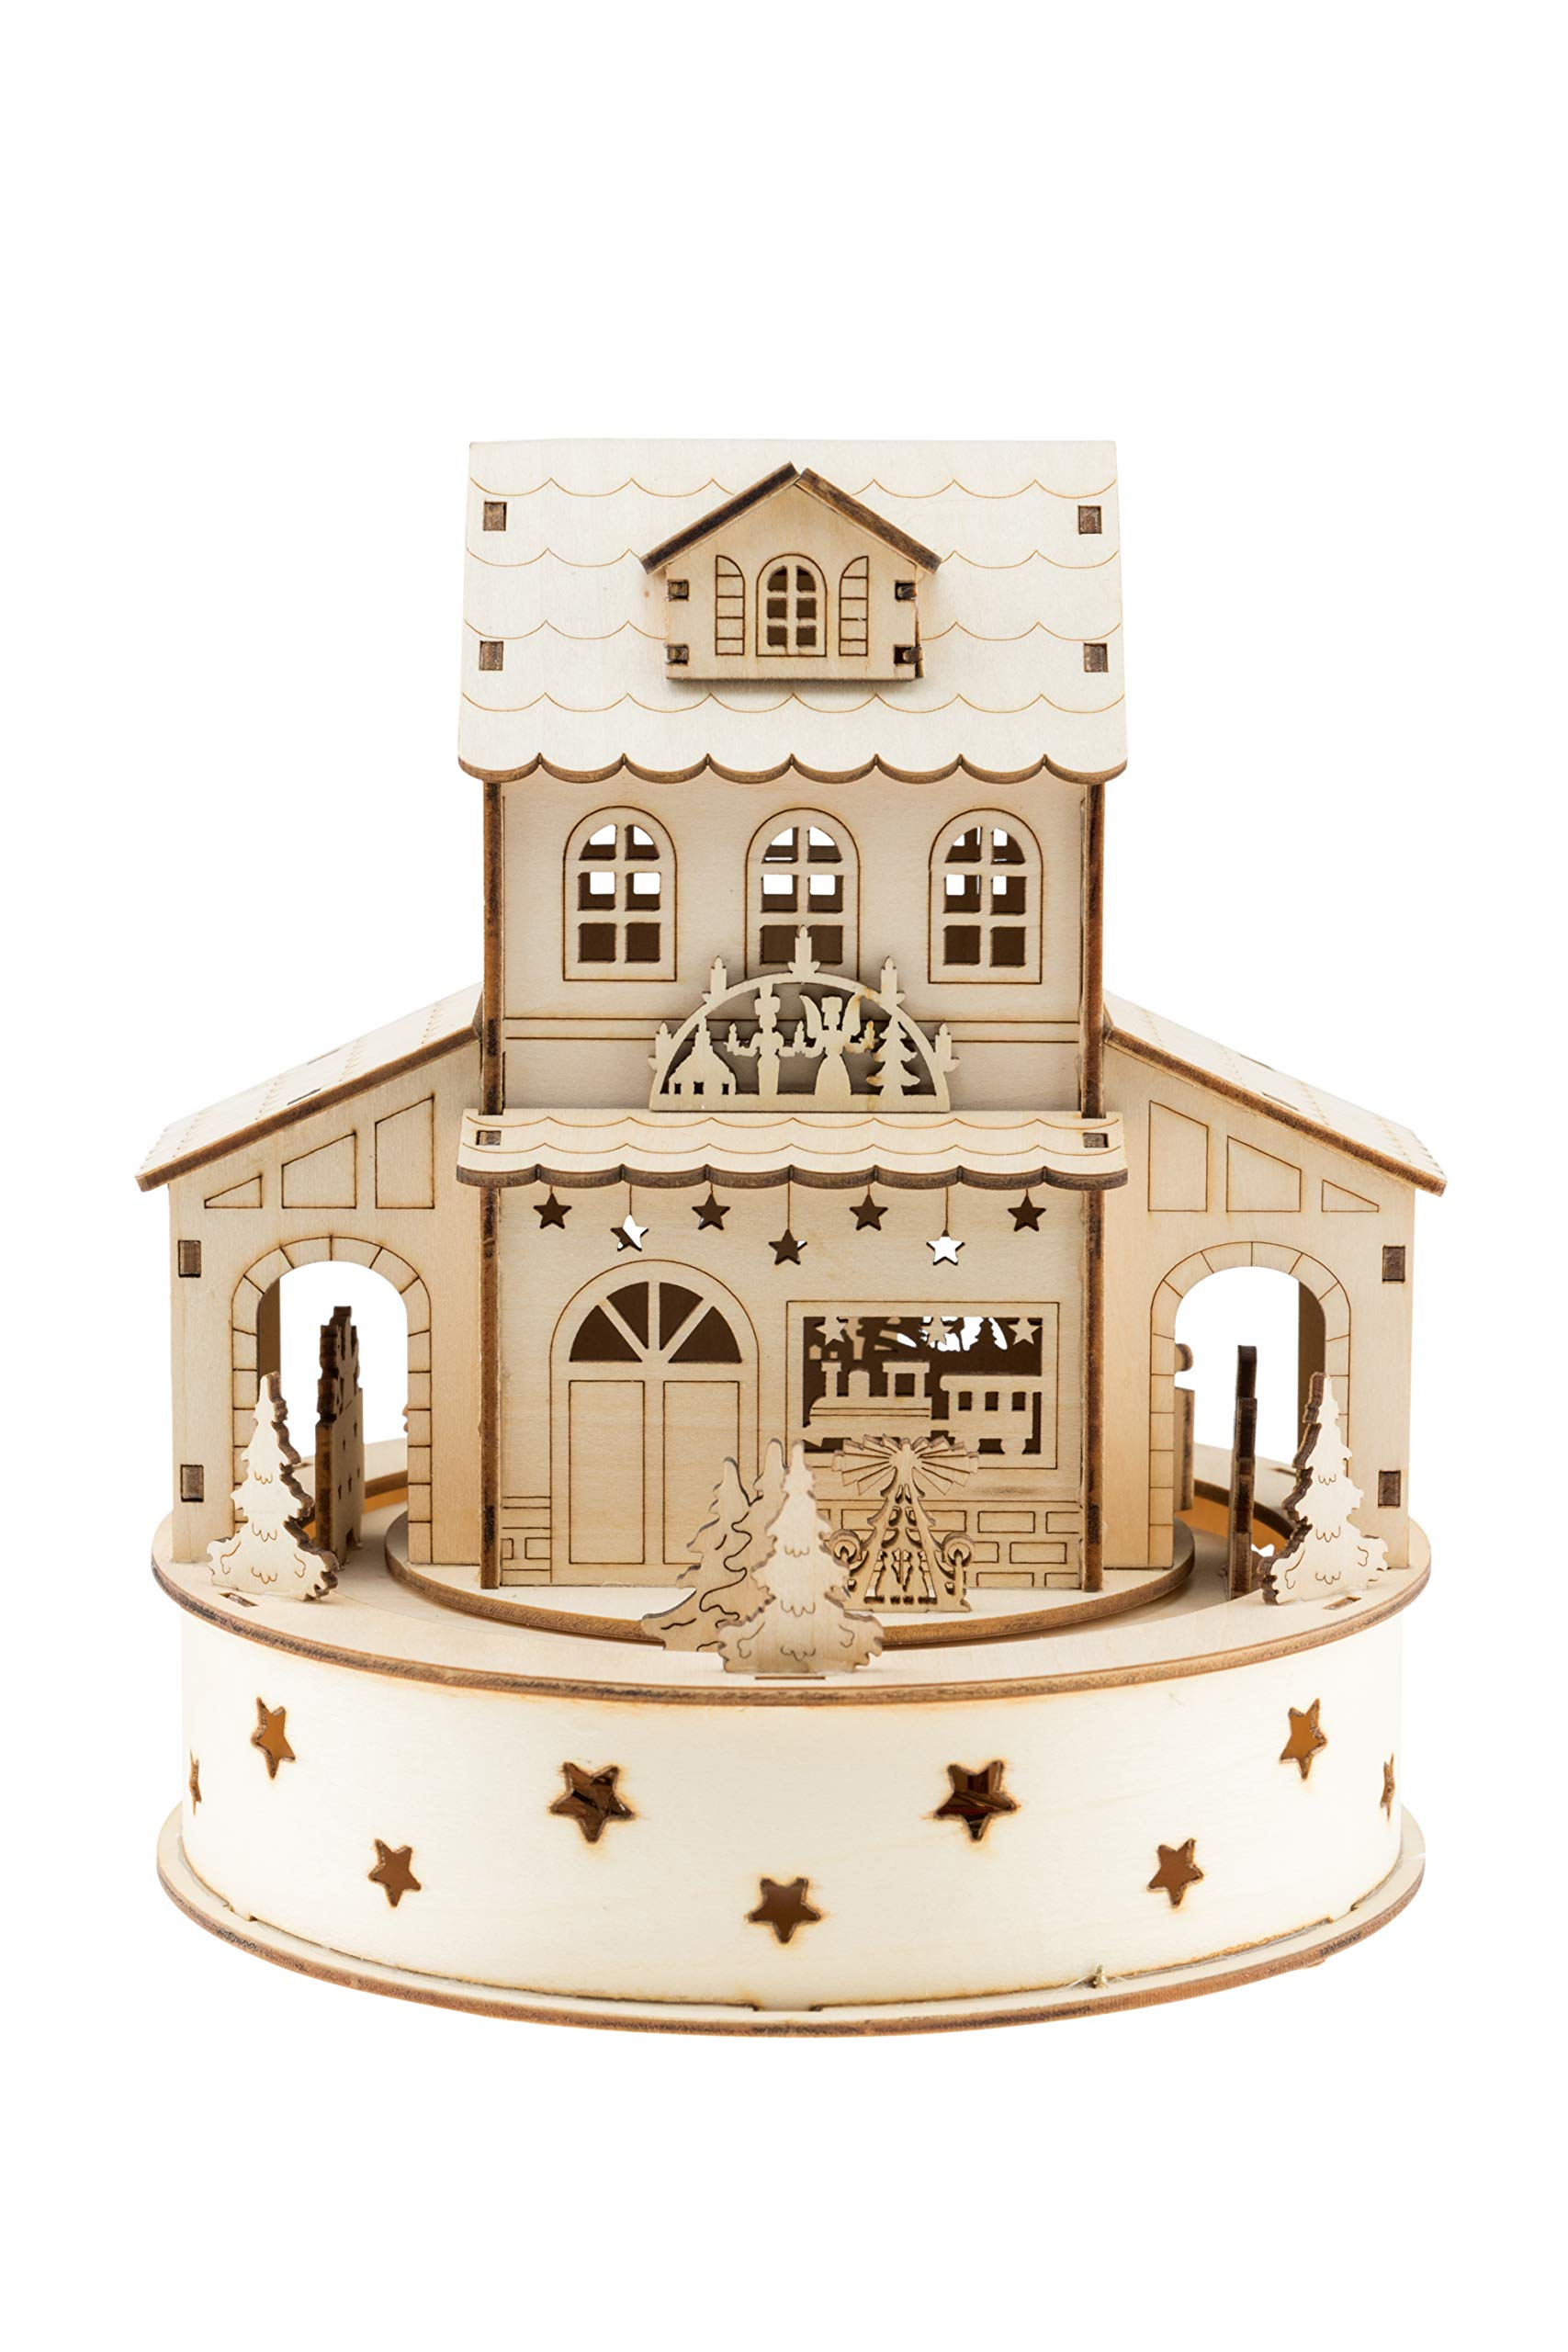 Clever Creations Traditional Wooden Table Top Christmas Decoration | Build Your Own Christmas Village | Unique House with Battery Operated Rotation and Christmas Lights | Christmas Trees and Train Eng